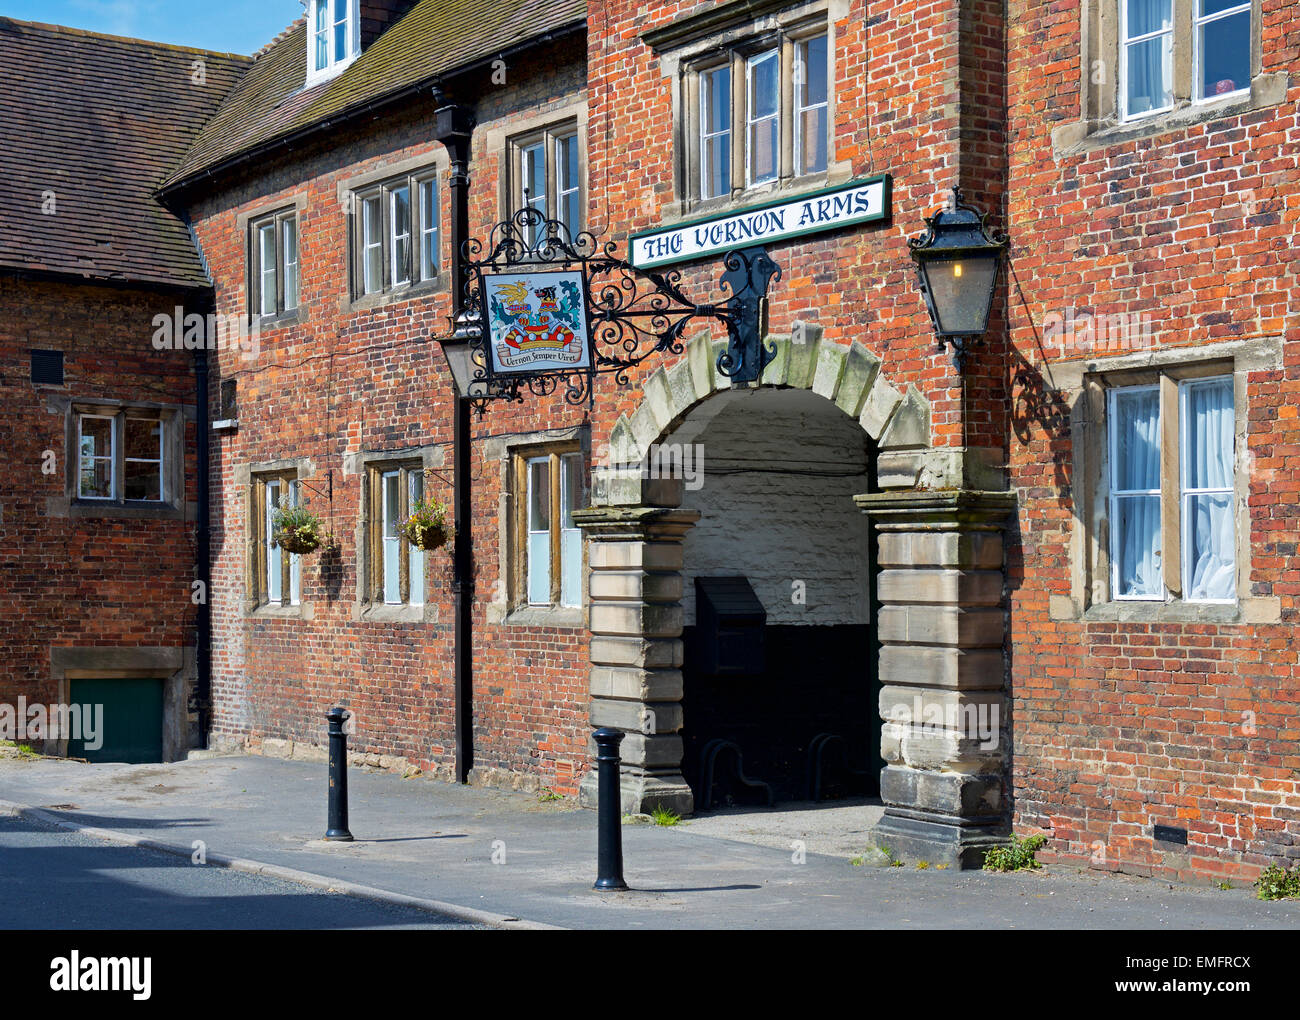 The Vernon Arms, Sudbury, Derbyshire, England UK - Stock Image